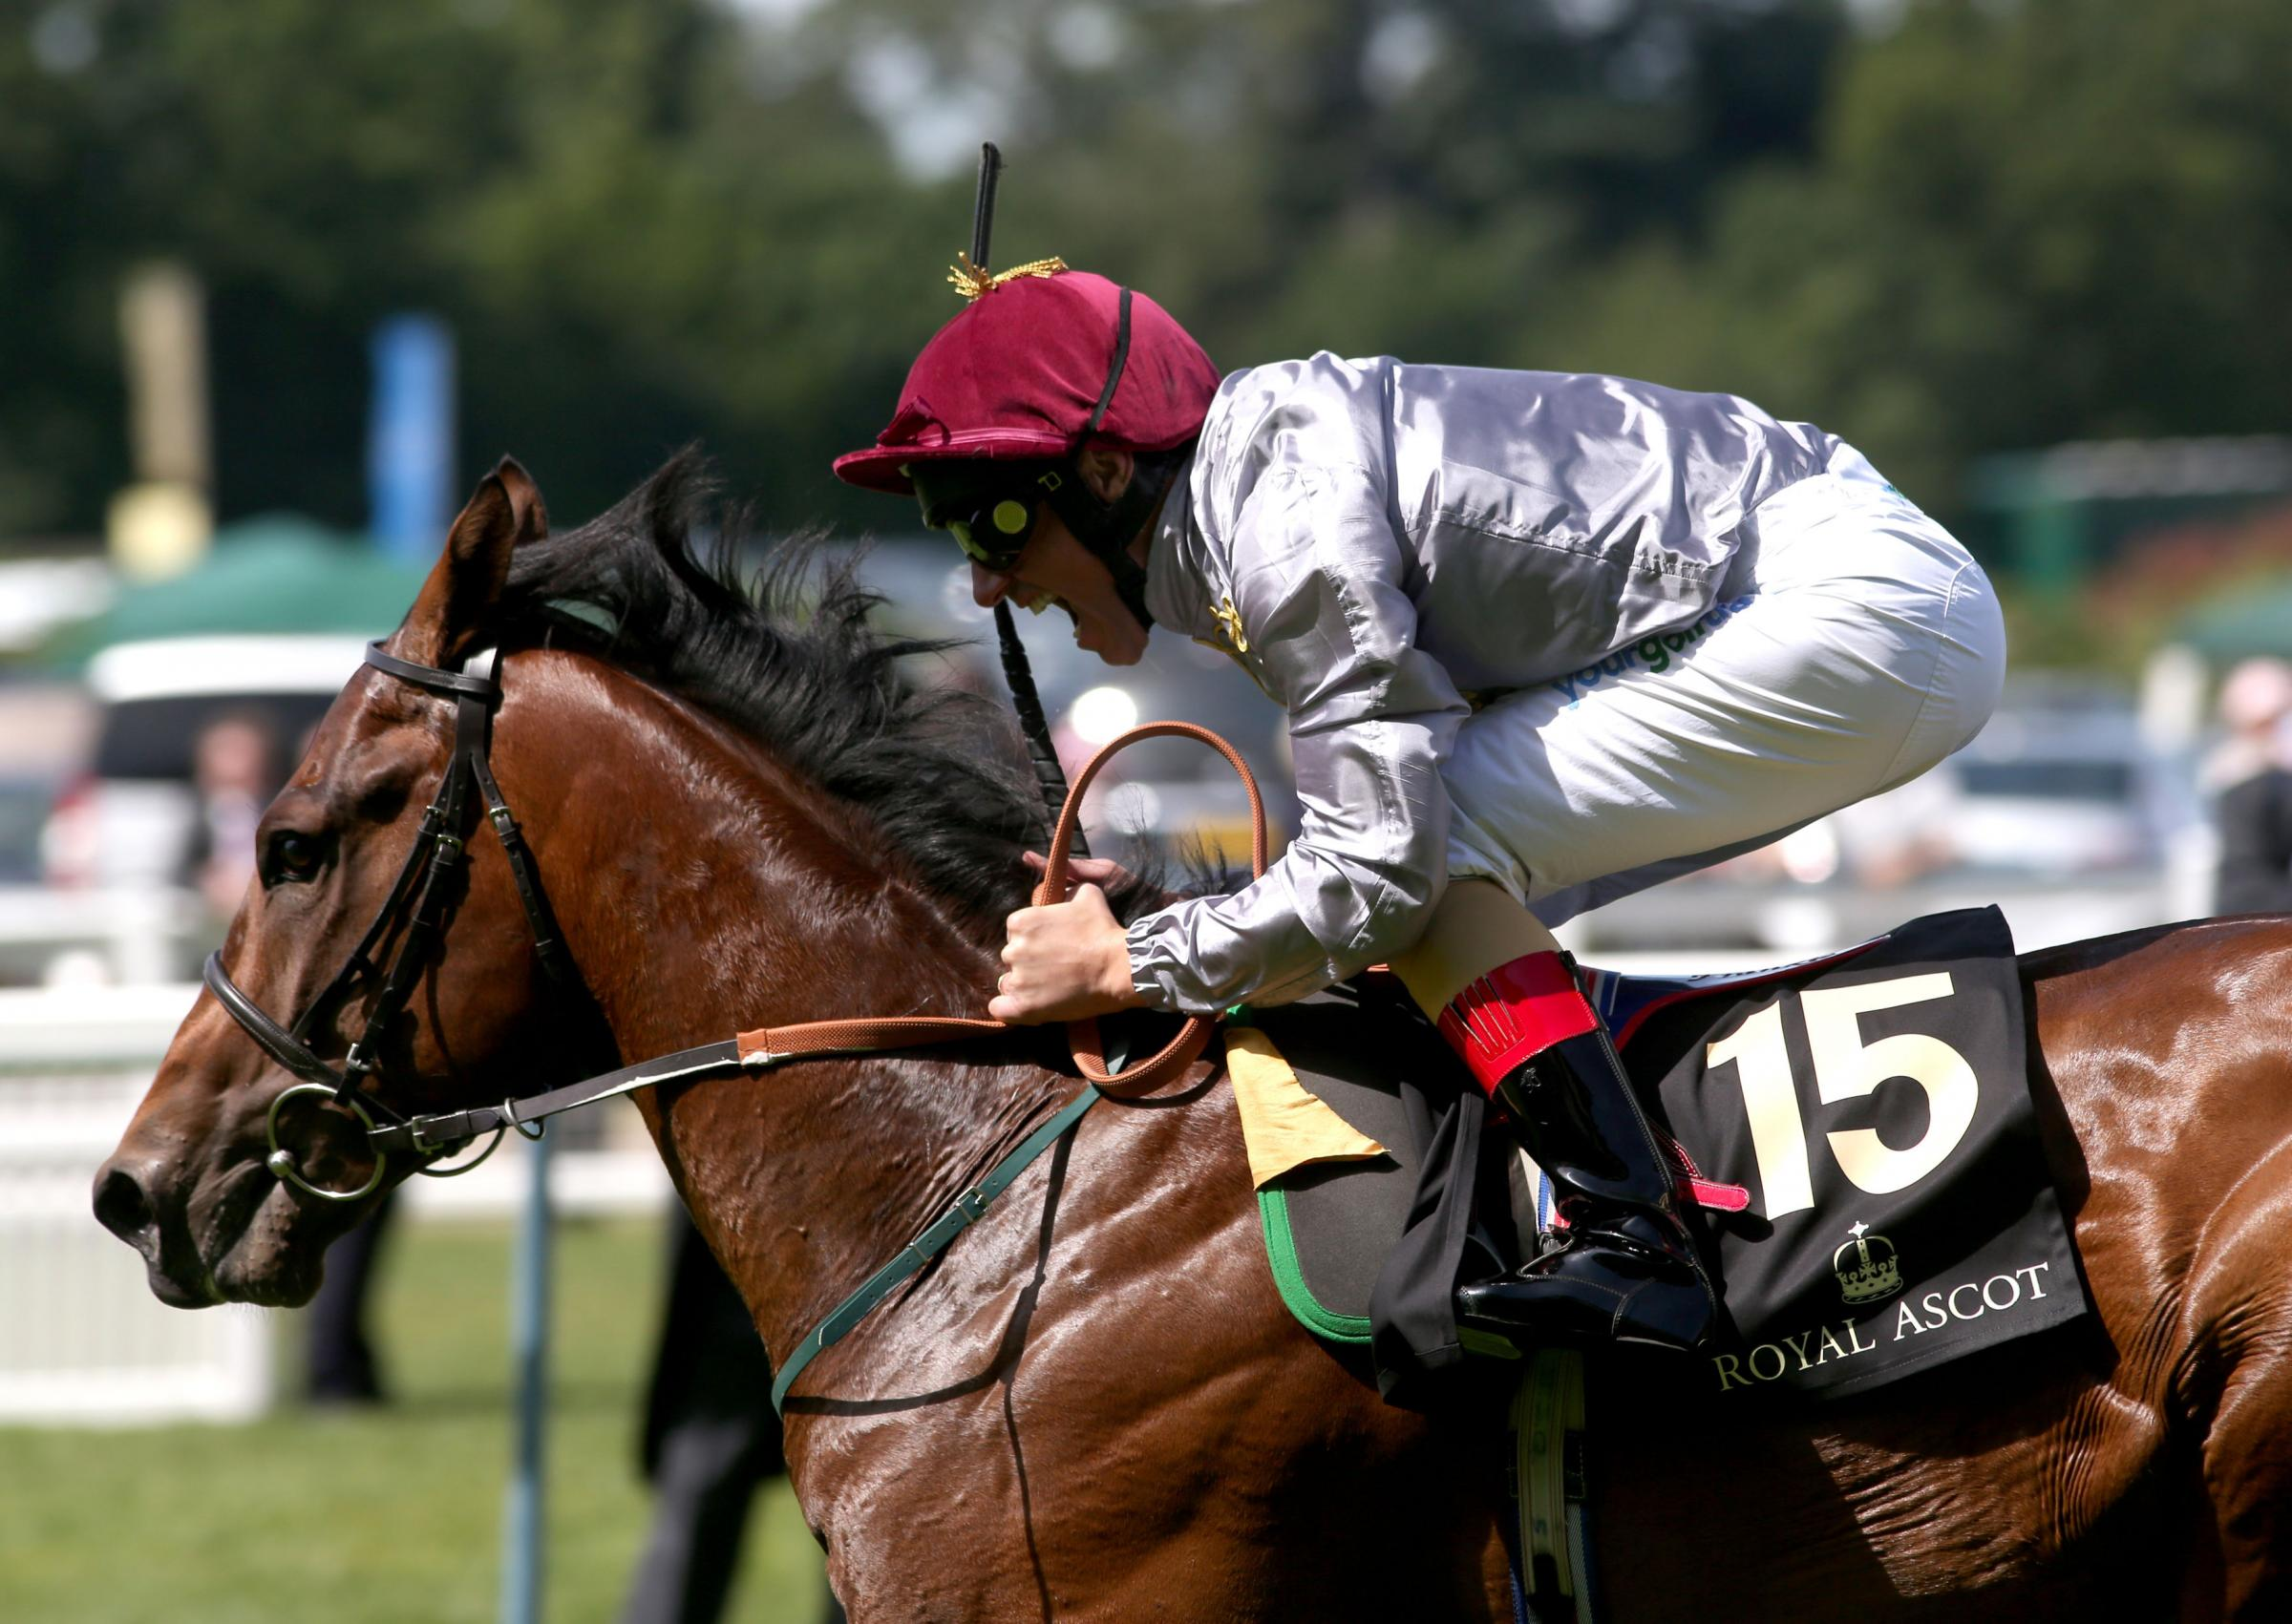 ON HIS WAY: The Wow Signal ridden by Frankie Dettori before winning the Coventry Stakes at Ascot Racecourse on Tuesday